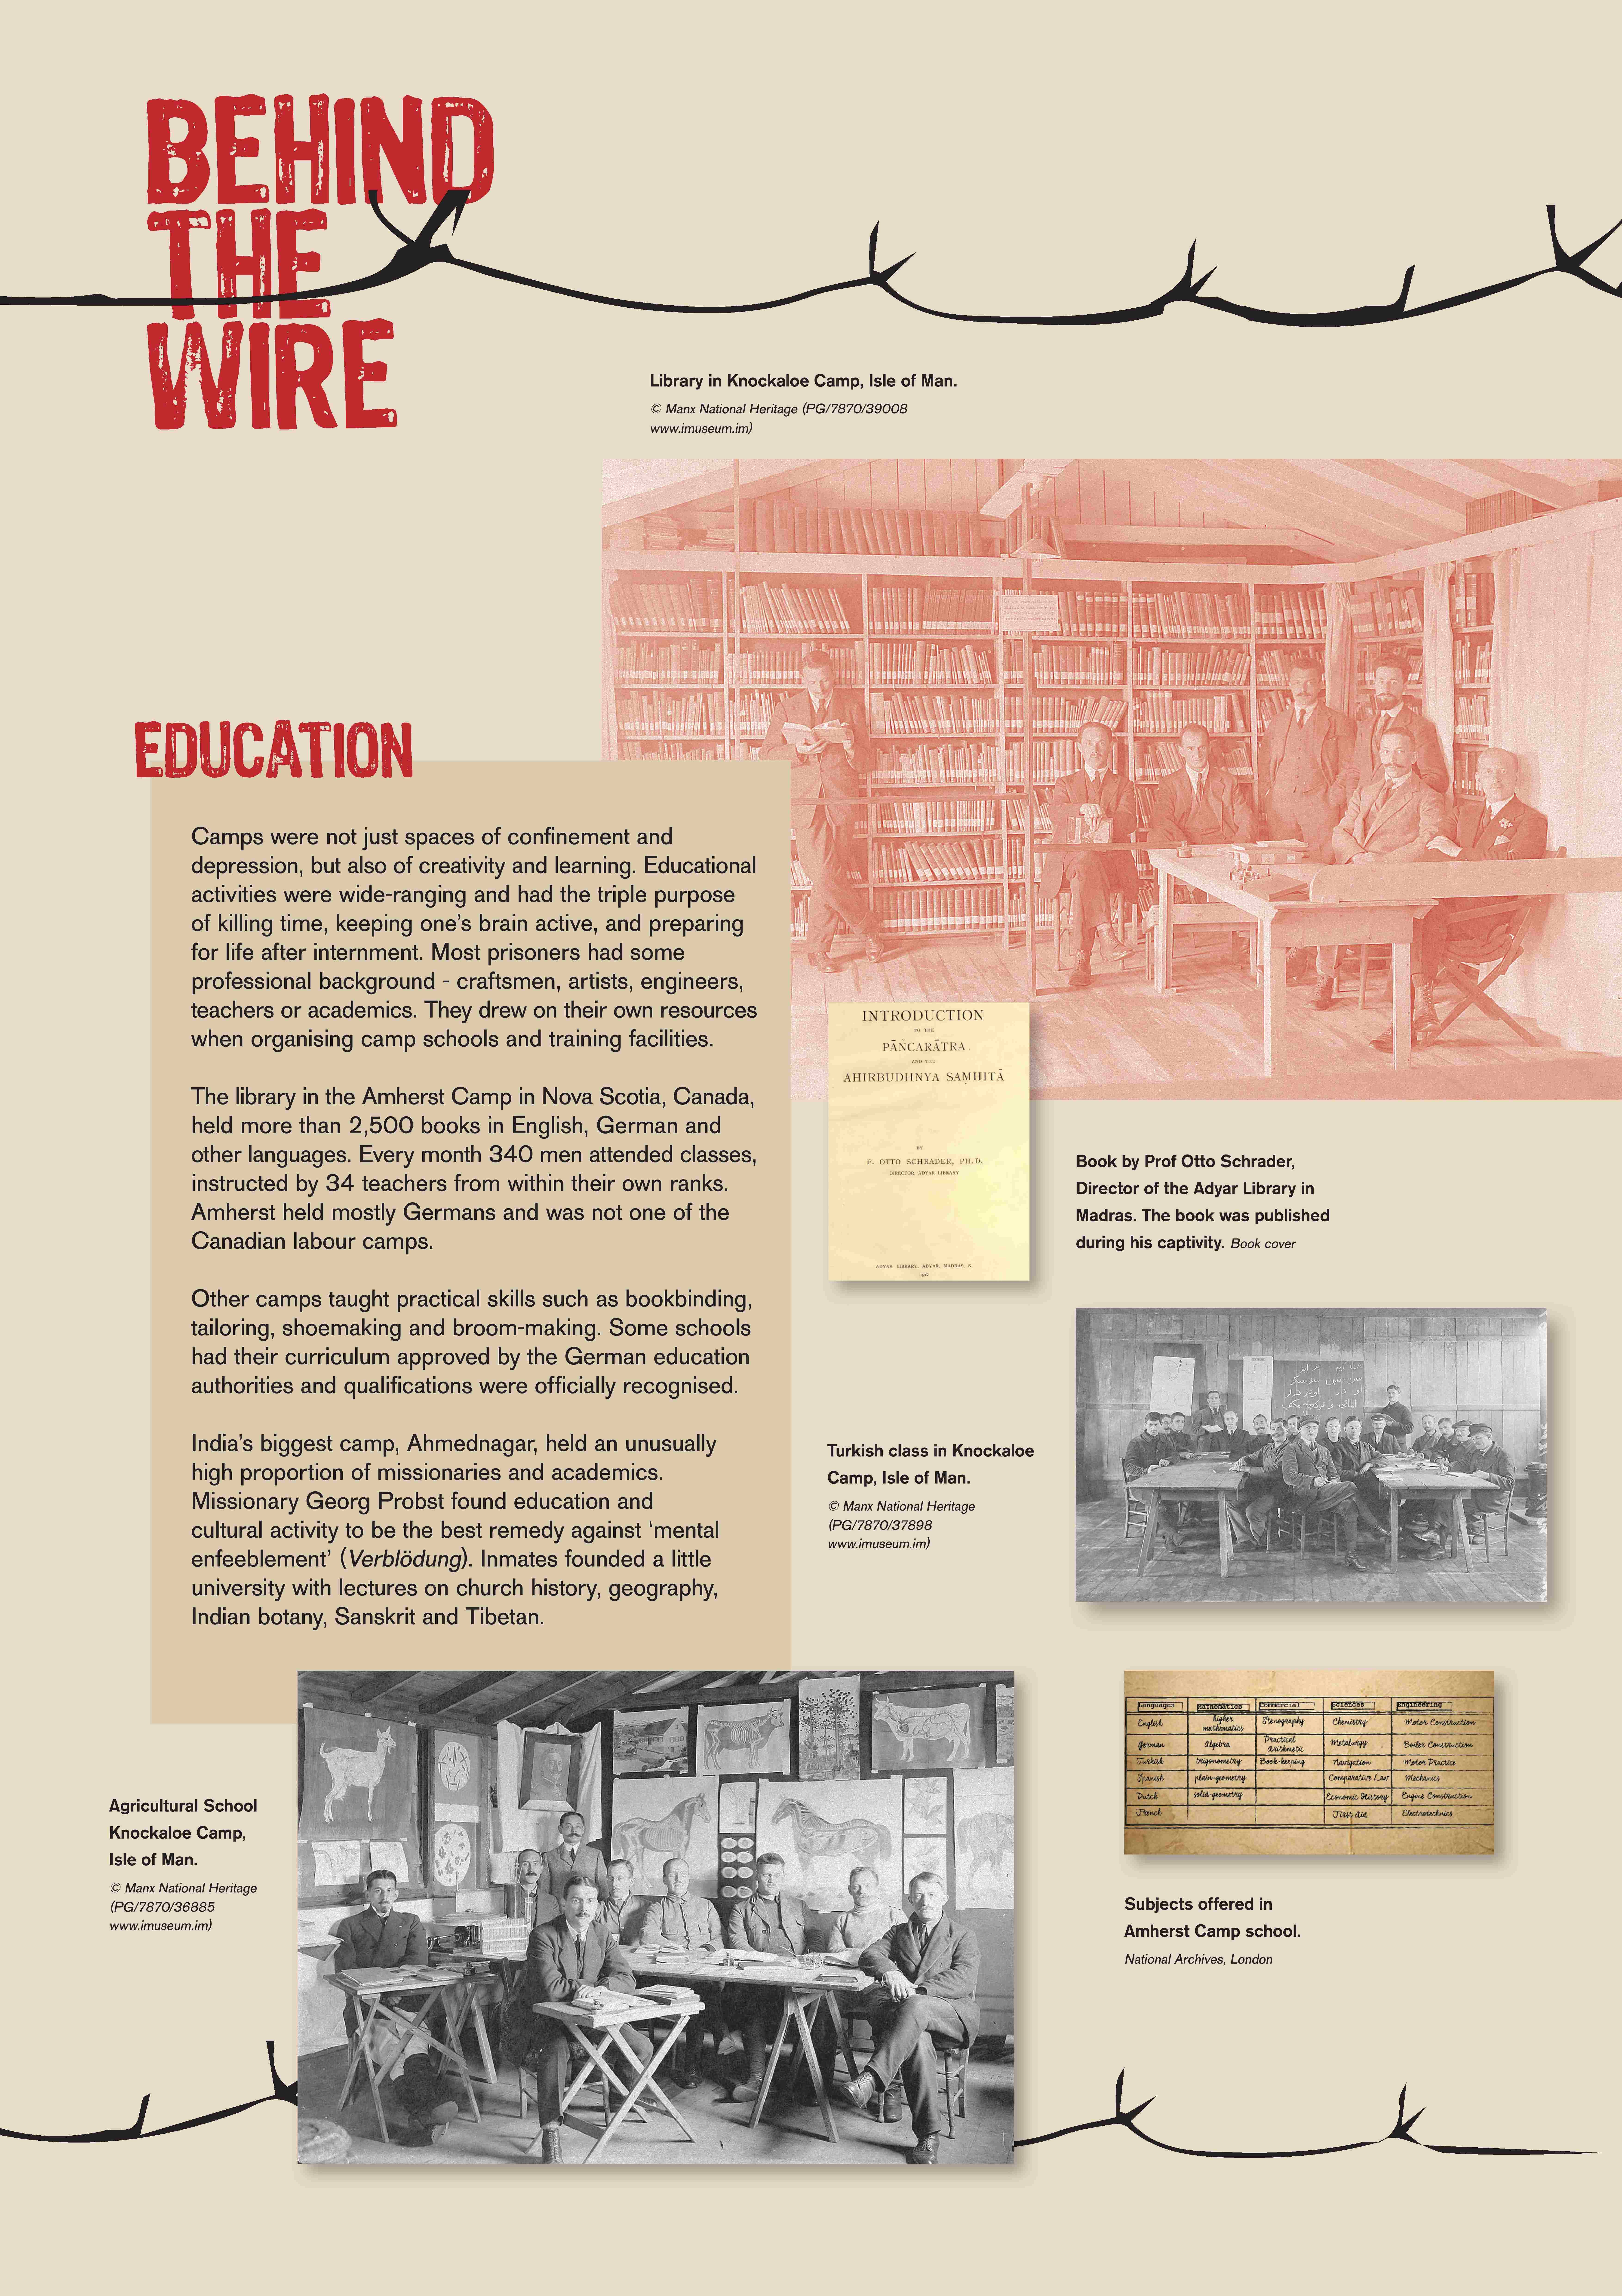 13-Behind the Wire-A1-Exhibition-Education_DIGITAL VERSION-page-001-compressed